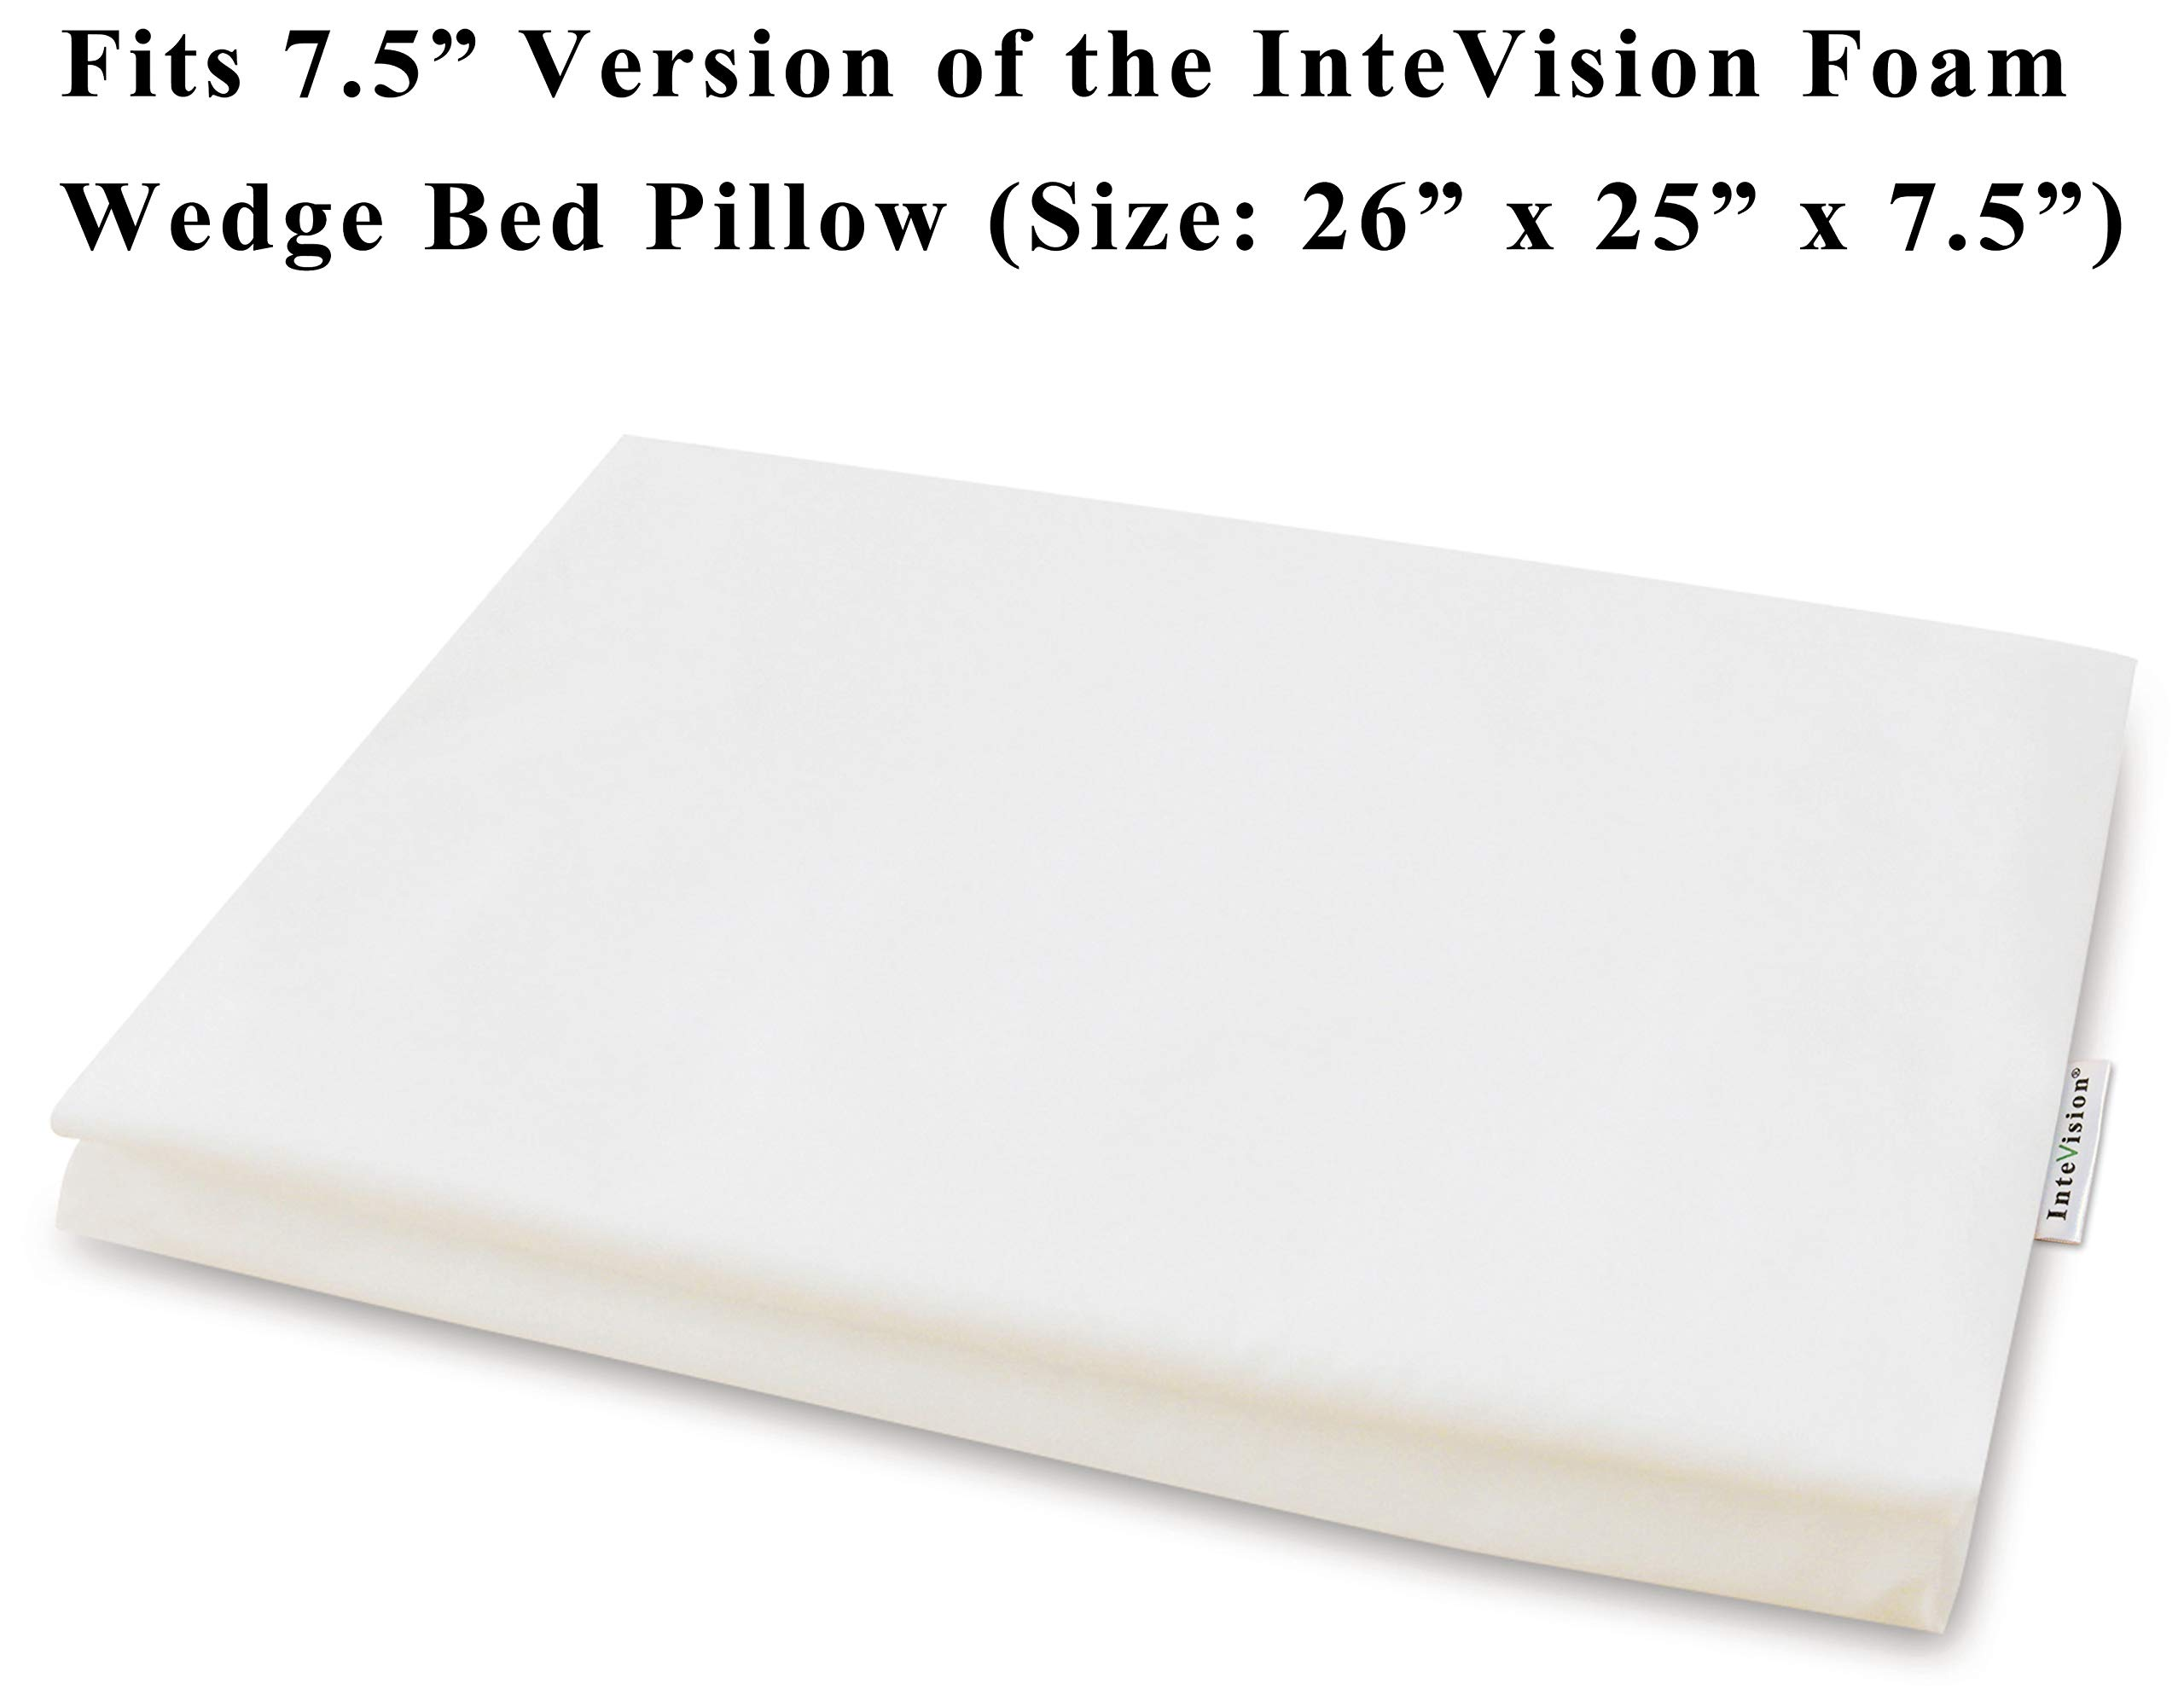 InteVision 400 Thread Count, 100% Egyptian Cotton Pillowcase. Designed to Fit the 7.5'' version of the Foam Wedge Bed Pillow (26'' x 25'' x 7.5'') by InteVision